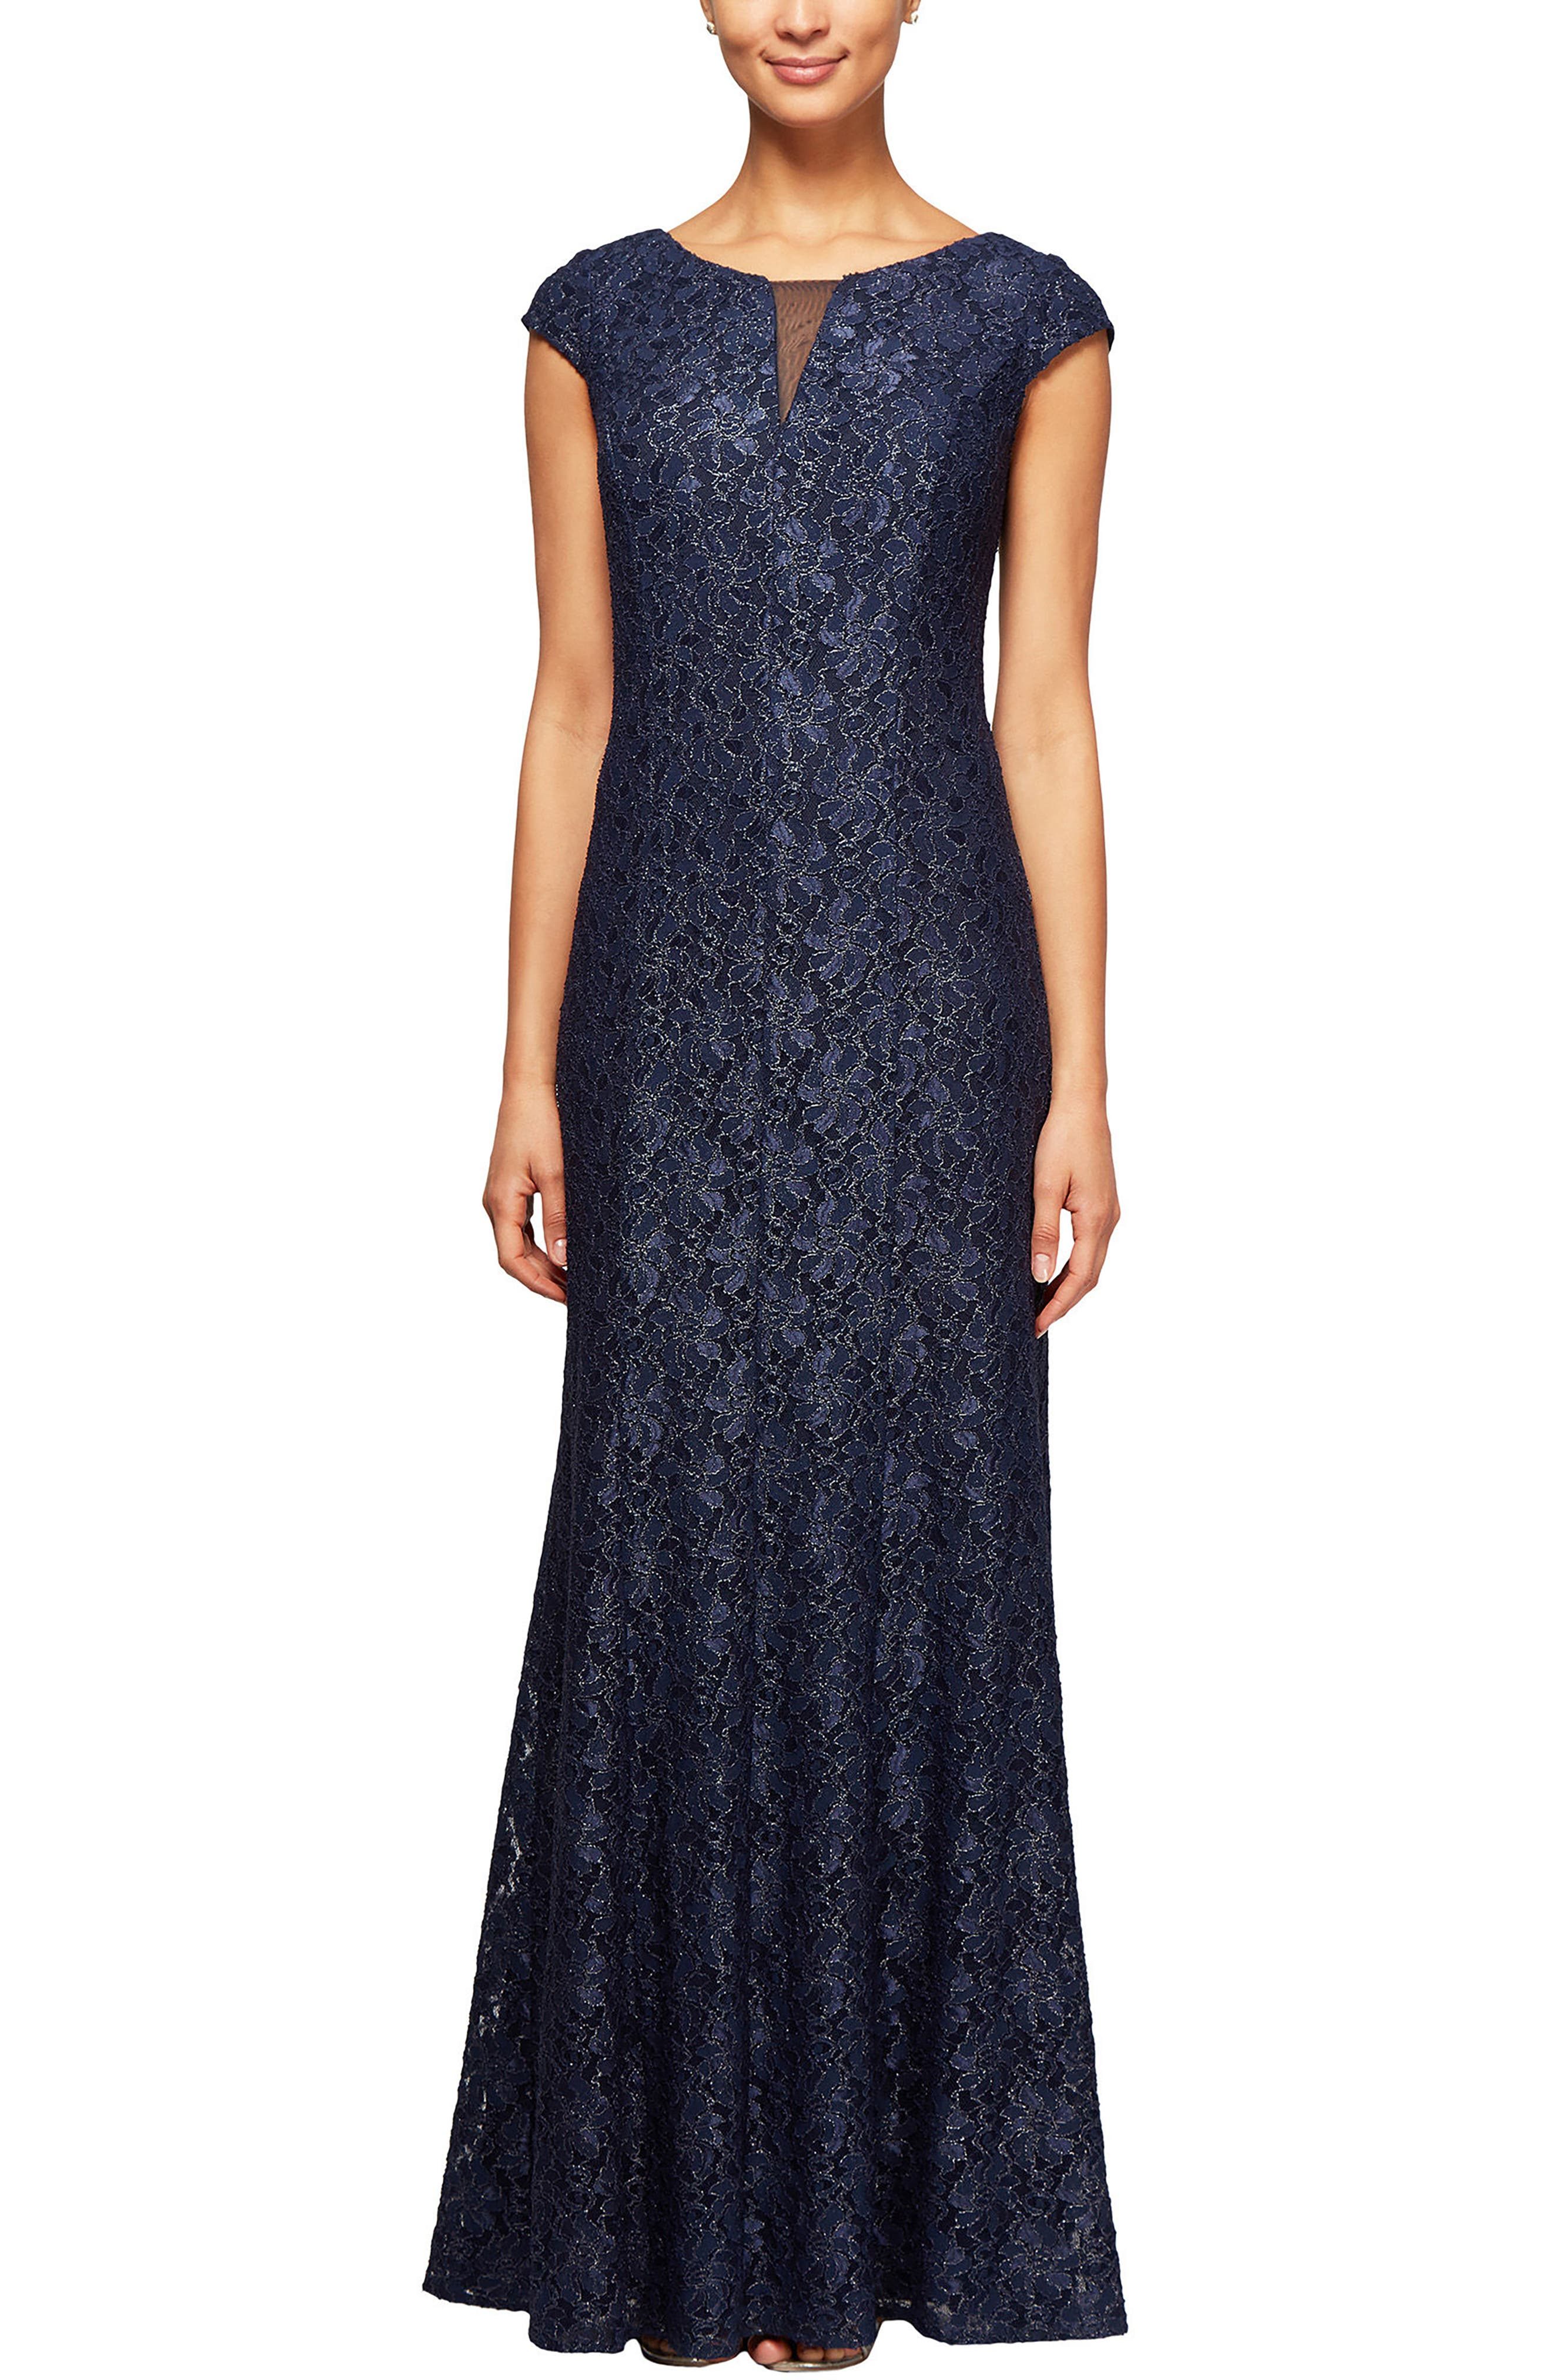 Alternate Image 1 Selected - Alex Evenings Metallic Lace A-Line Gown (Regular & Petite)